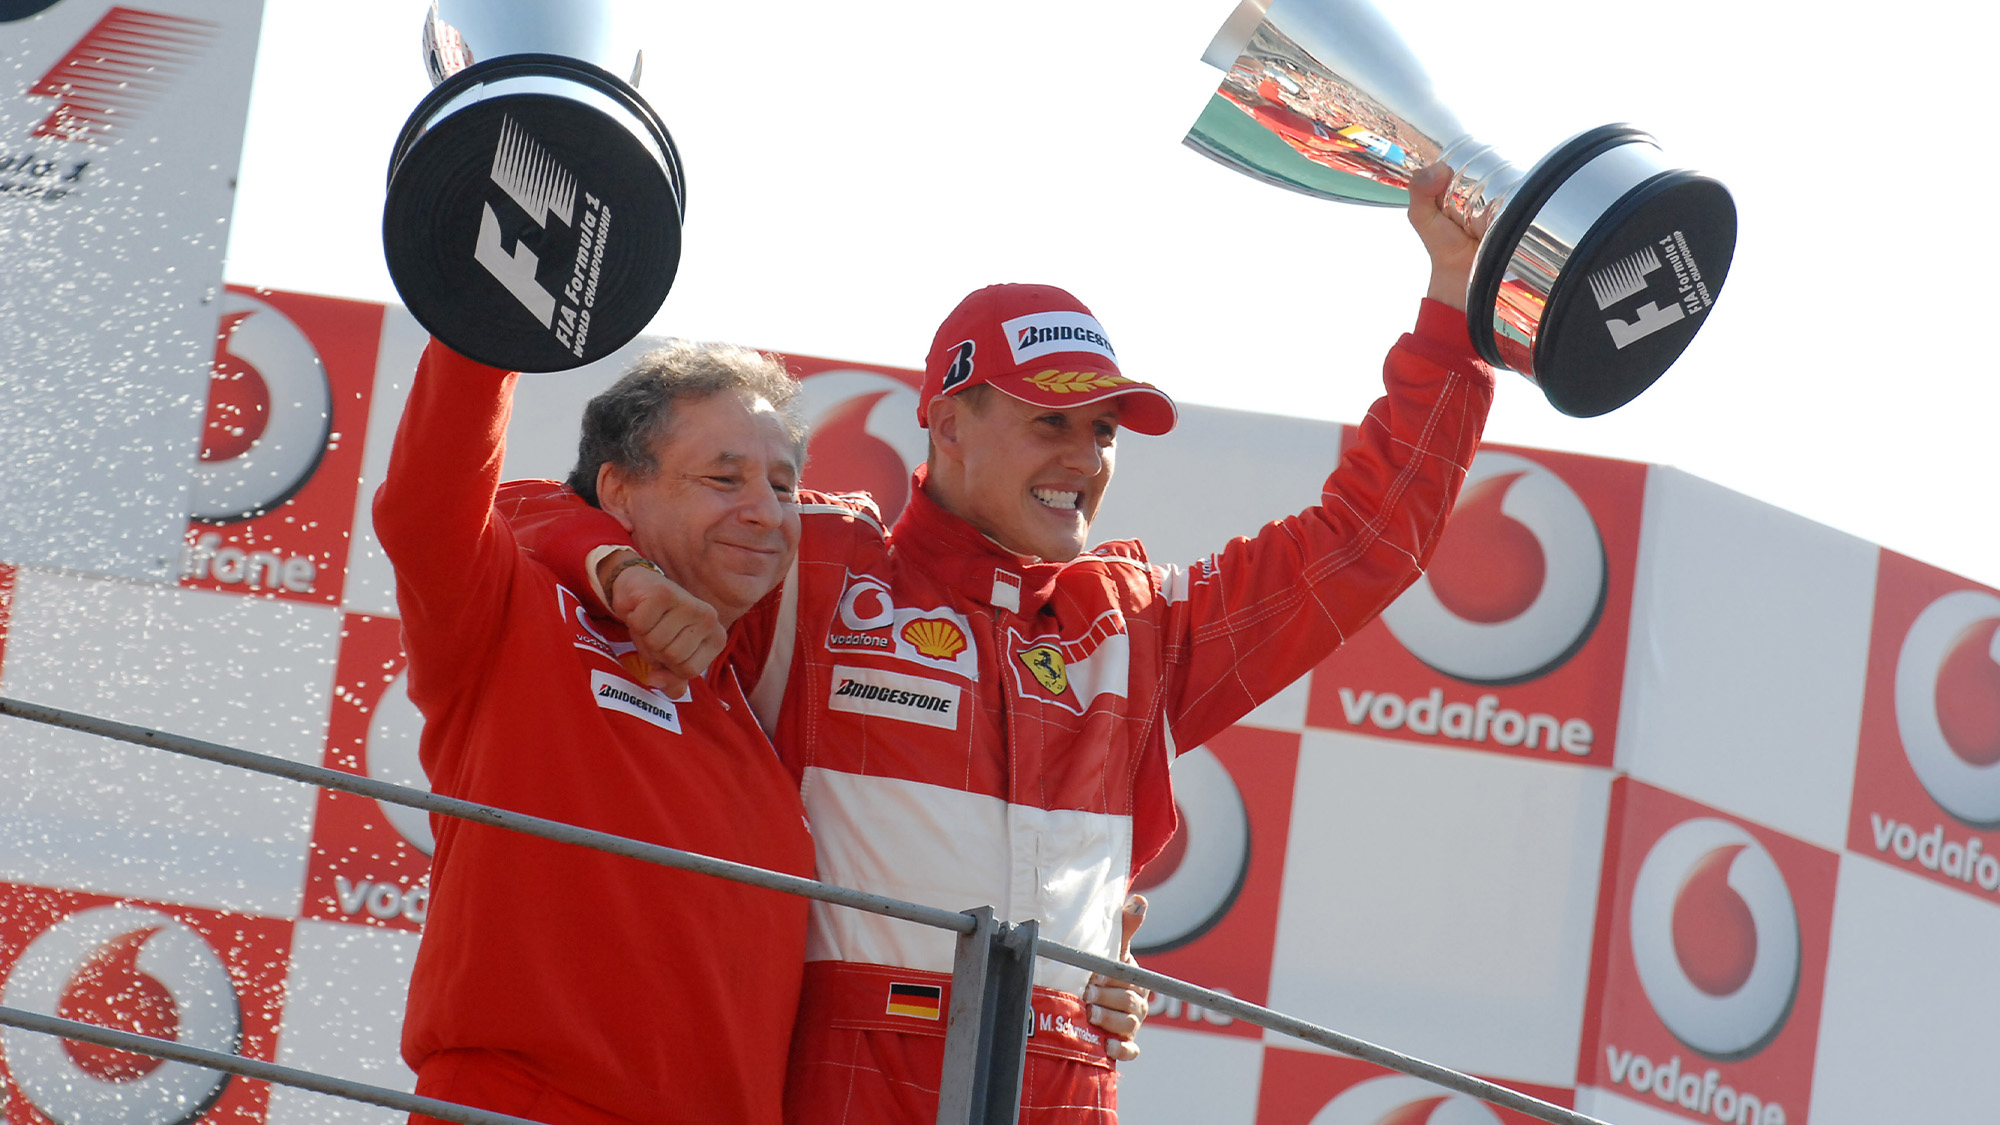 Jean Todt and Michael Schumacher with trophies in 2006